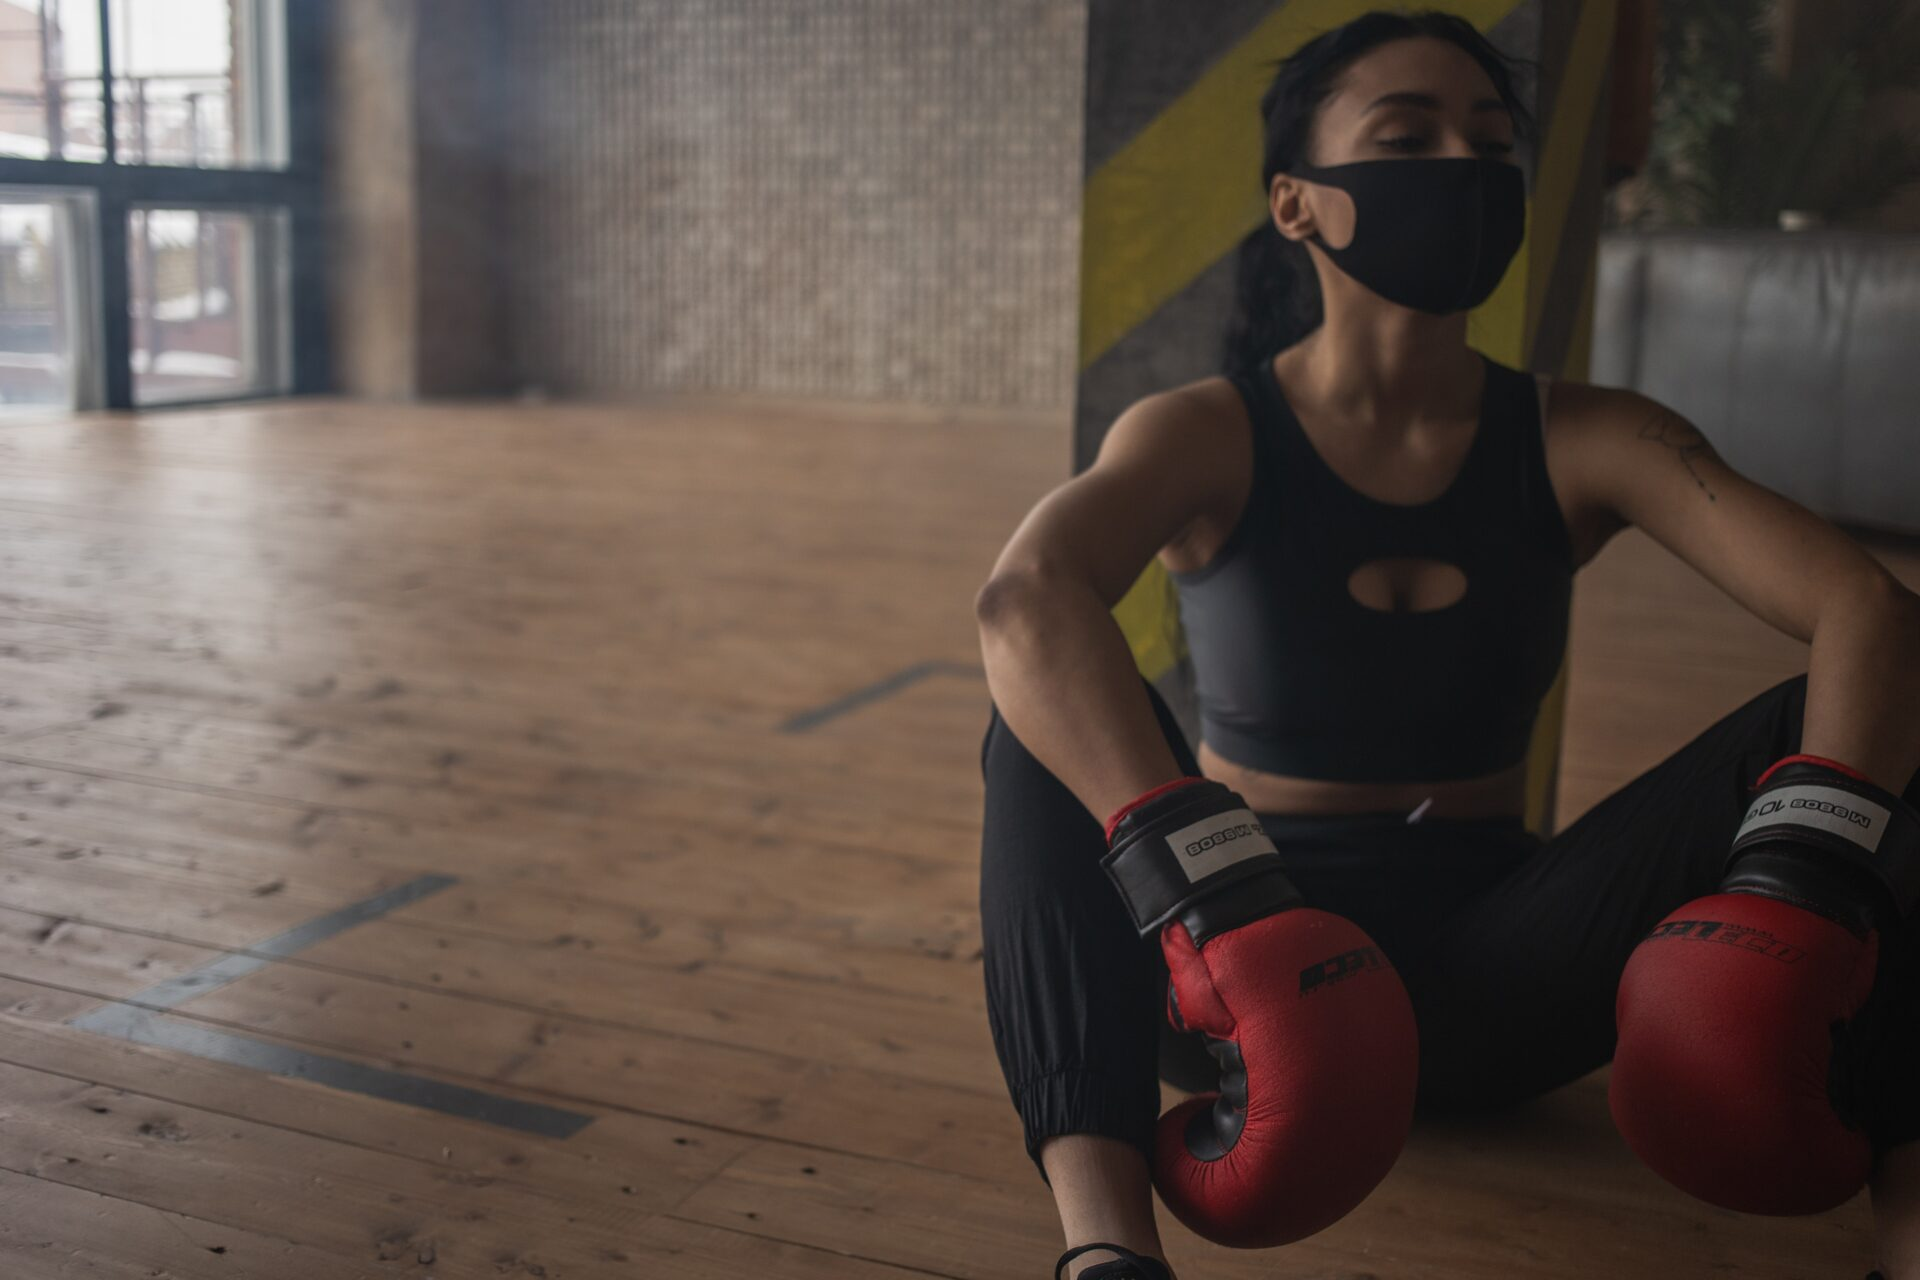 Girl in active wear and a face mask and boxing gloves, sitting down, puffed after boxing